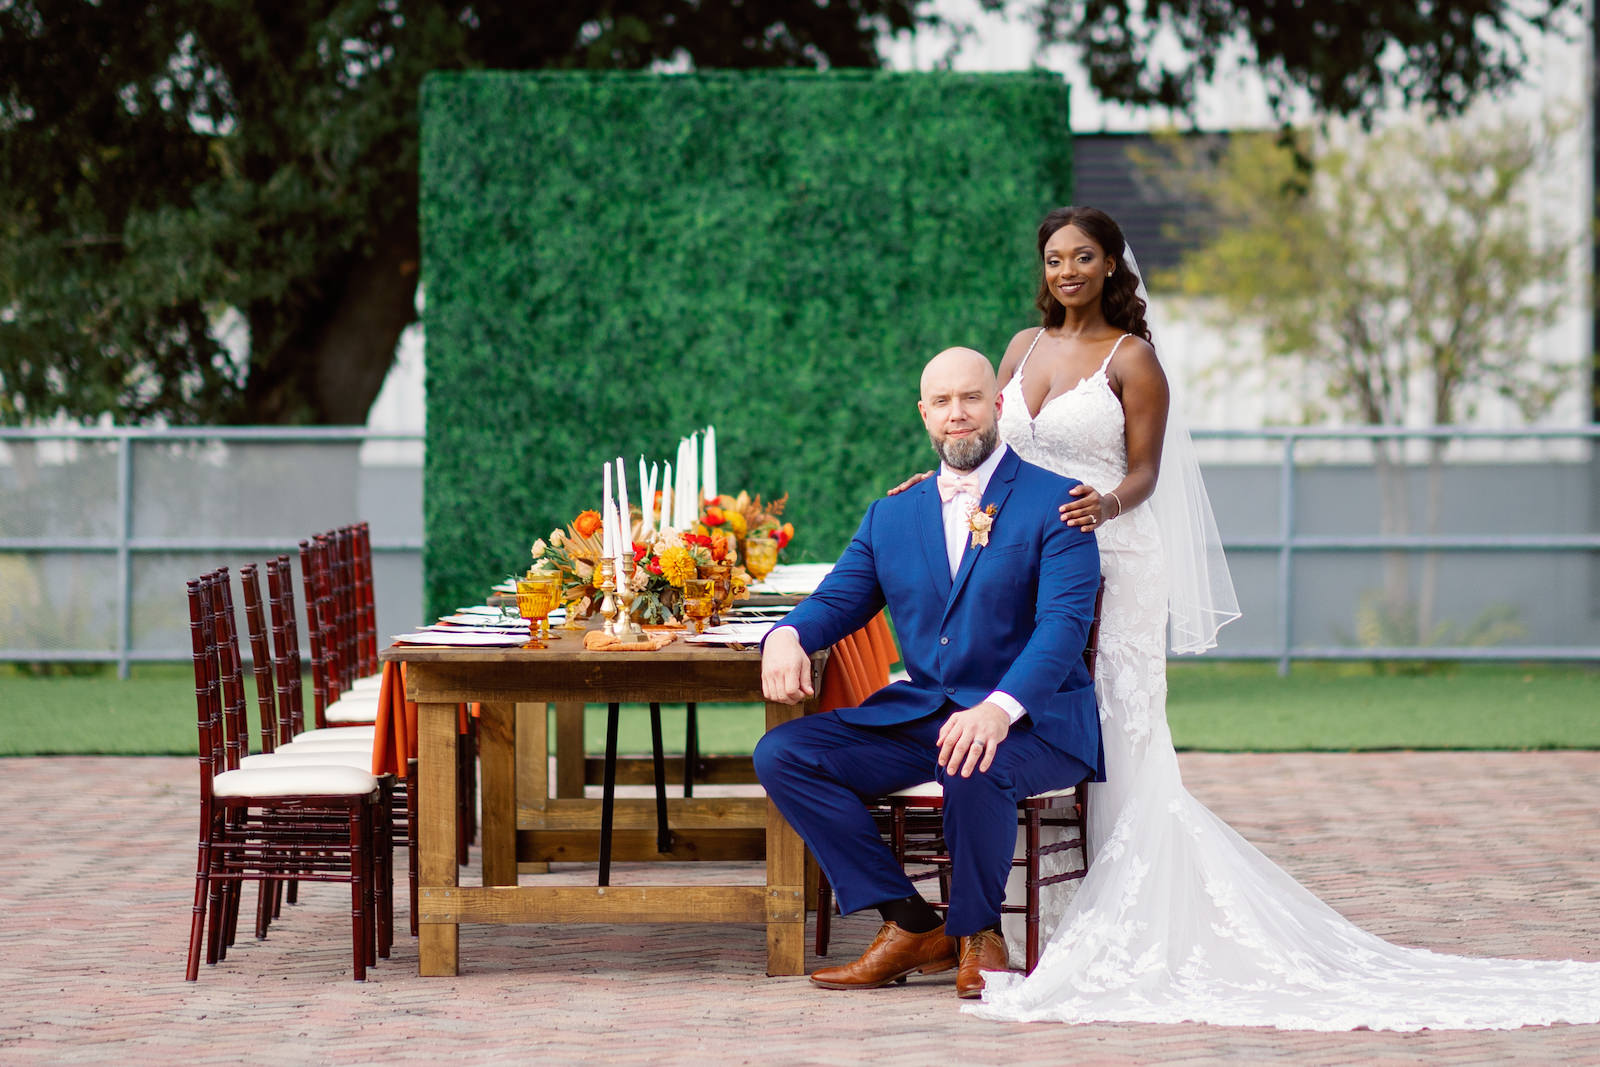 Downtown St. Petersburg Bride and Groom, Modern Boho Florida BrideWearing White Lace Mermaid Style Dress, Groom in Dark Blue Suit, Long Wooden Feasting Table with Vibrant Yellow and Red Floral Centerpiece, Tall White Candles and Gold Candlesticks, Wooden Chiavari Chairs, Greenery Wall Backdrop   Tampa Bay Wedding Planner Coastal Coordinating